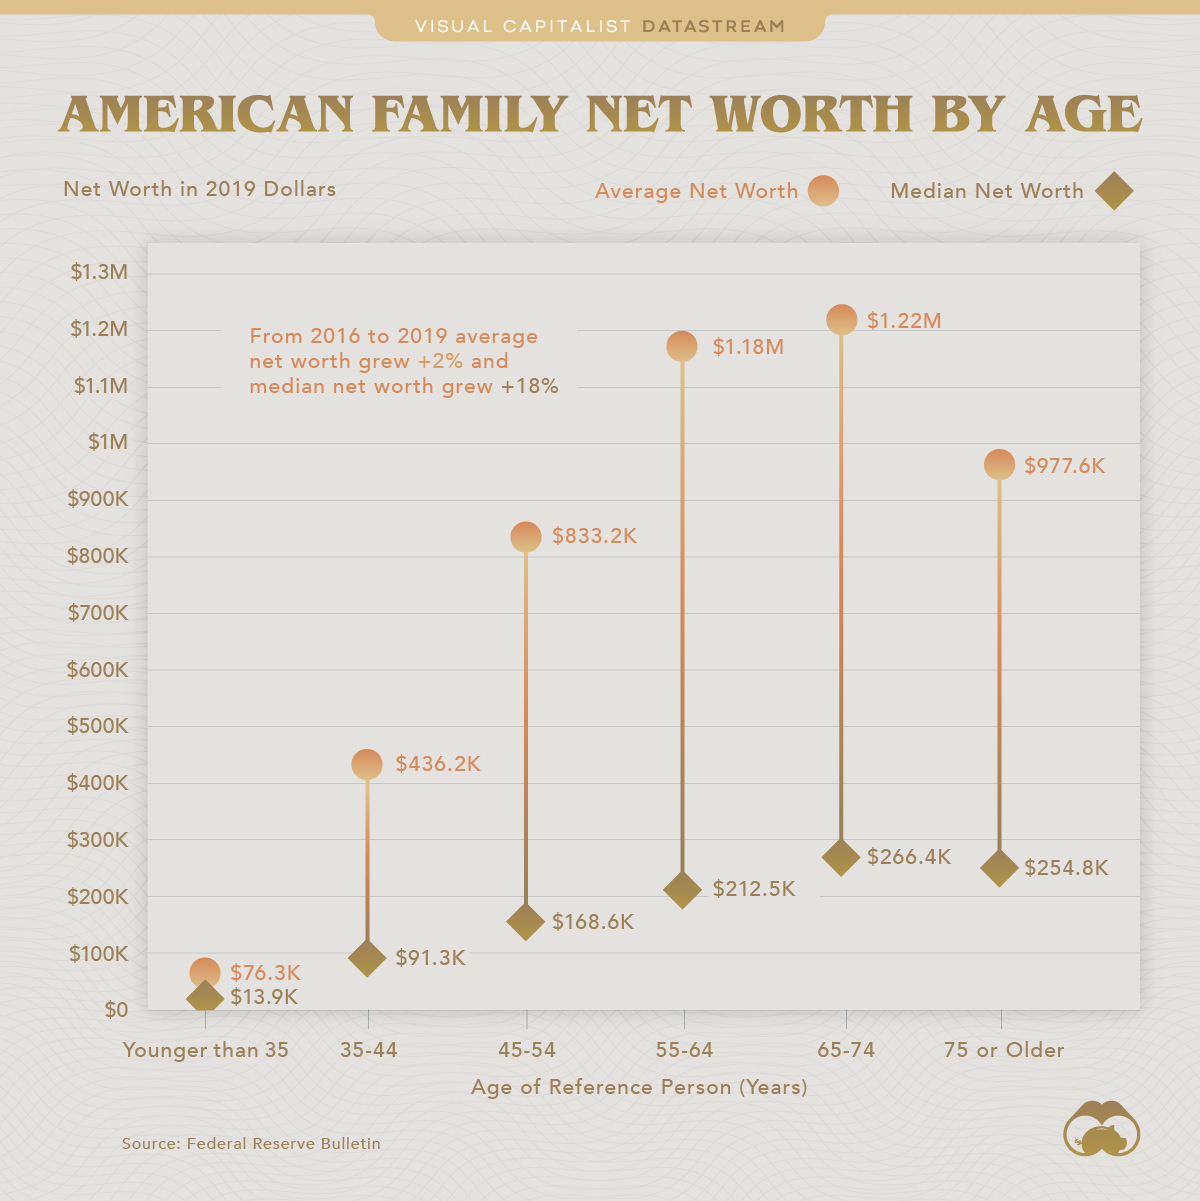 American Family Net Worth by Age